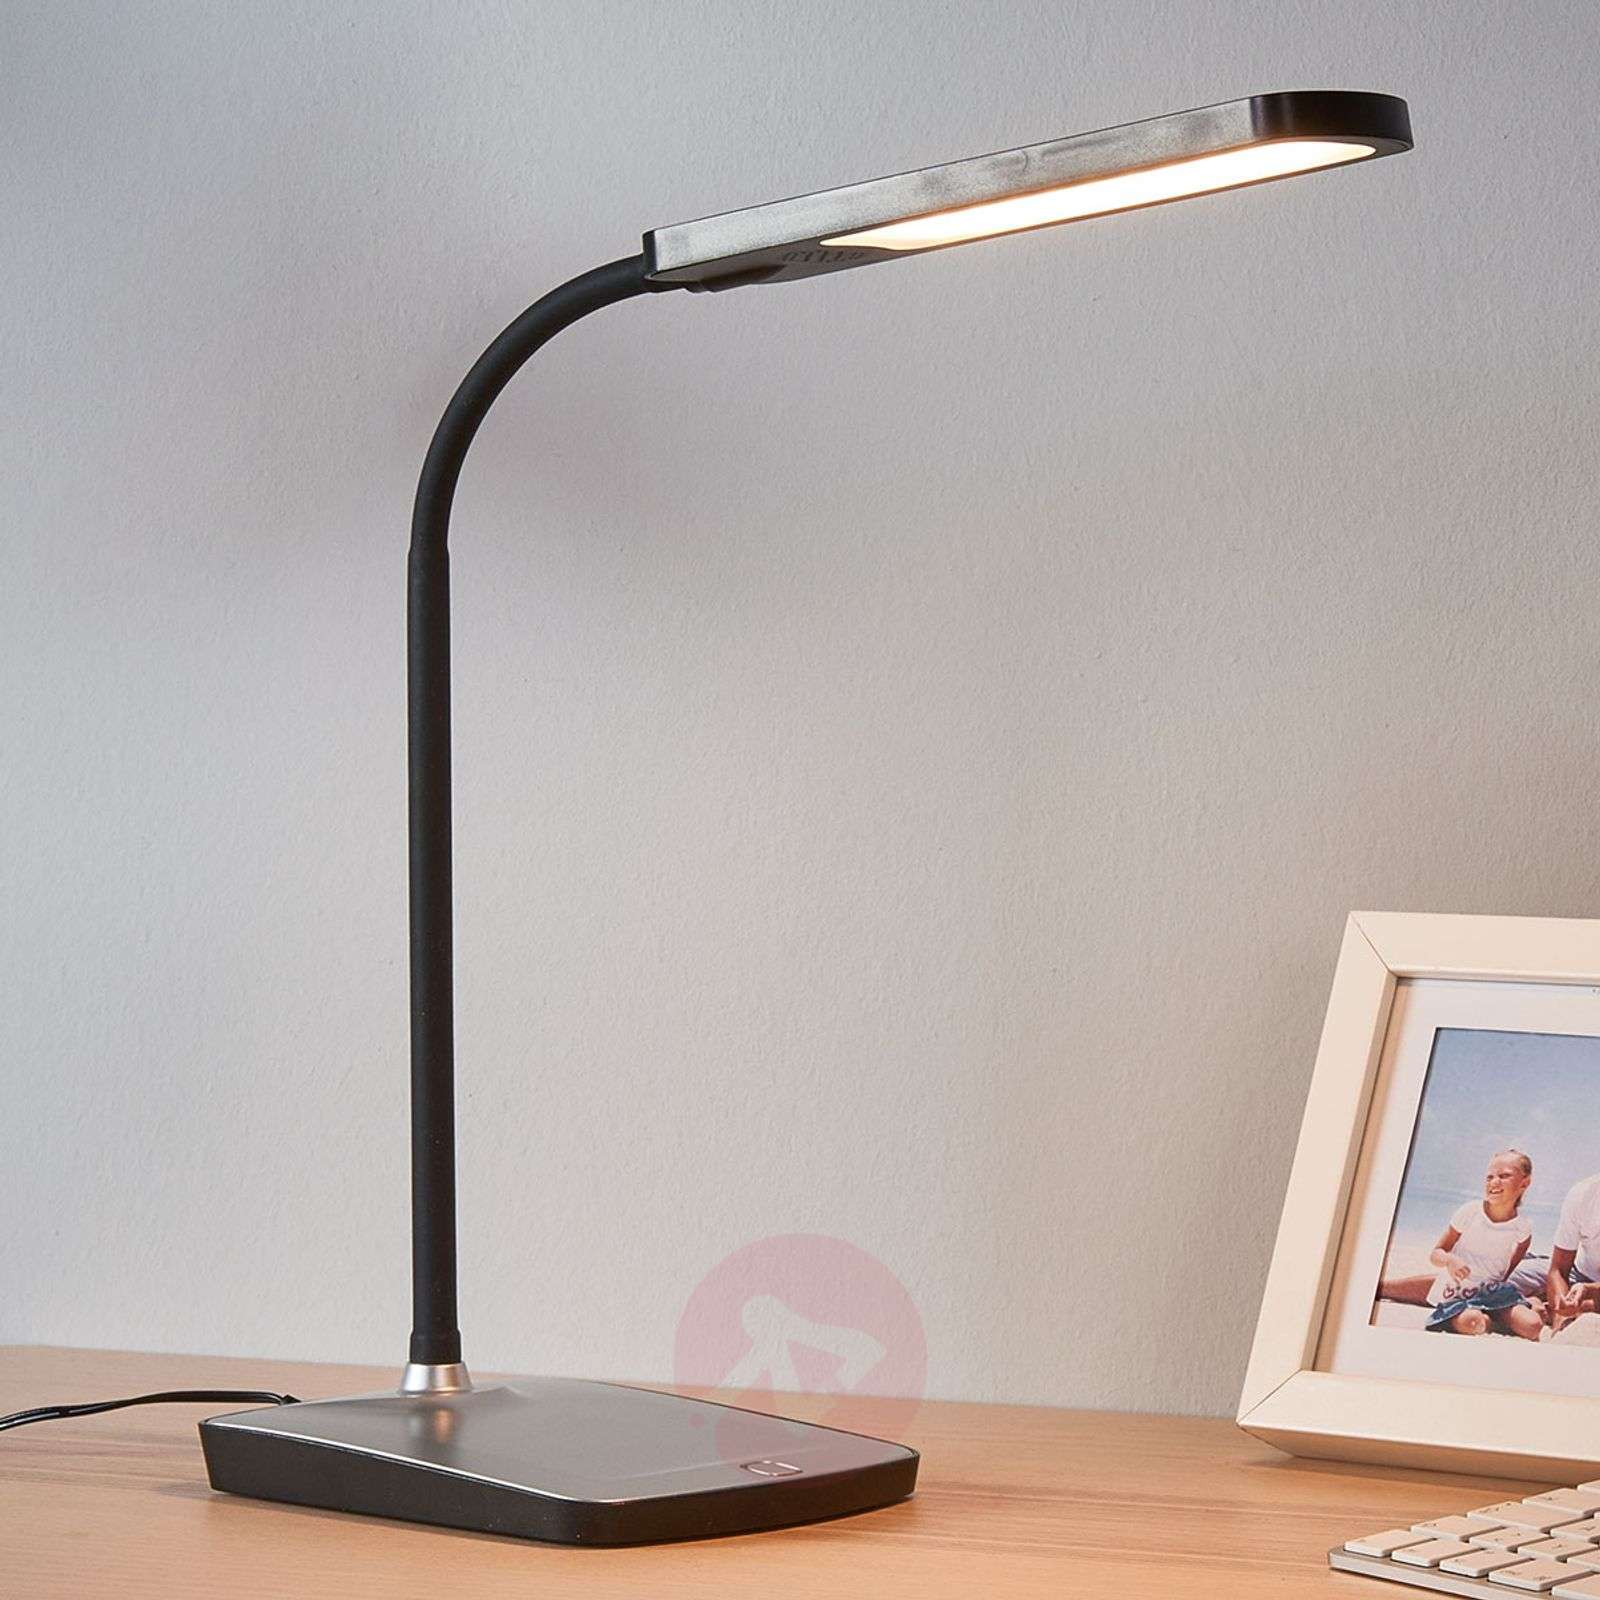 Leoris LED desk lamp with USB port-9643040-02